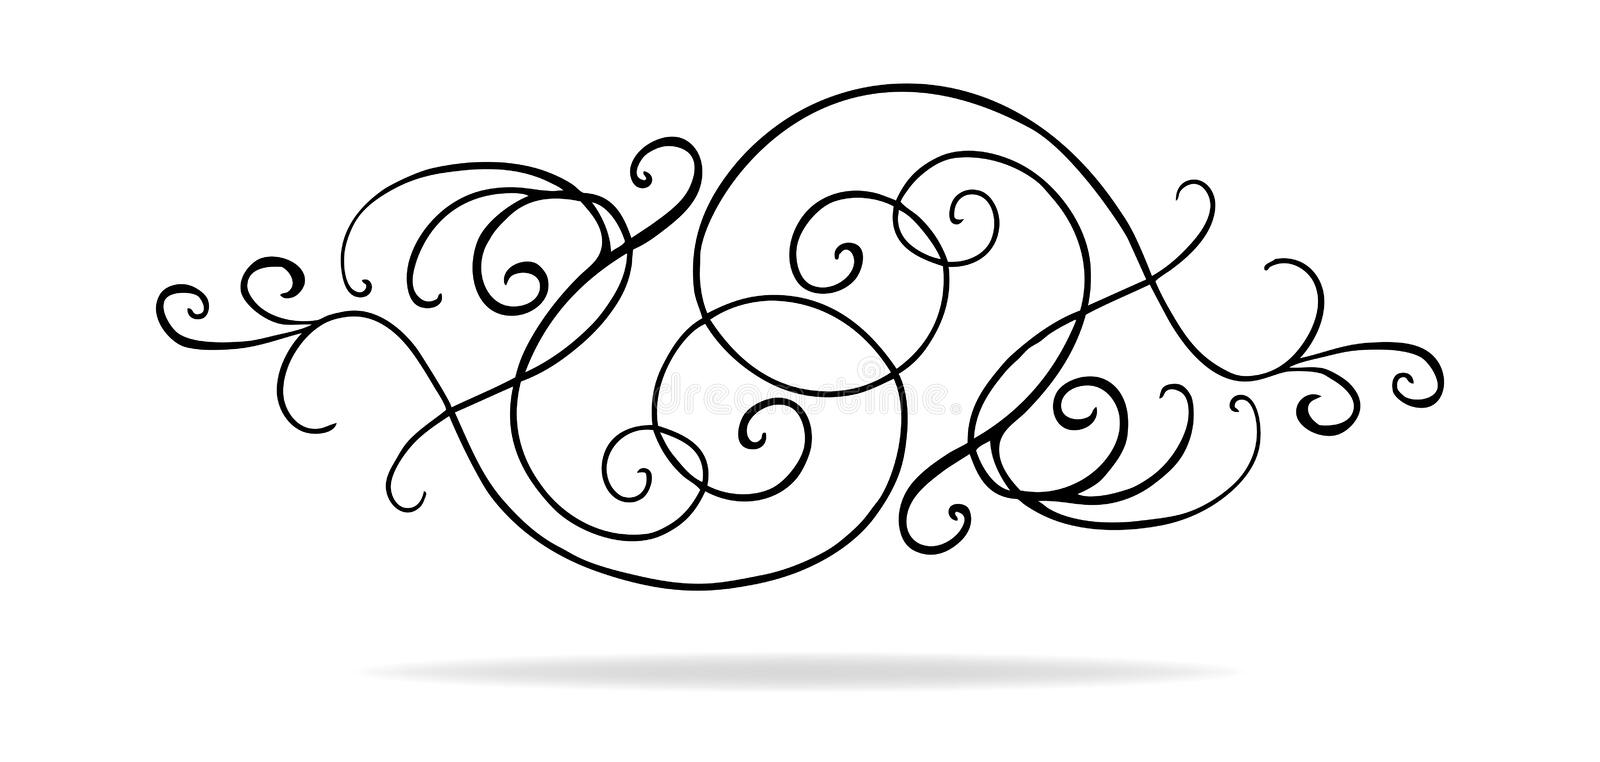 Download Vector Design Elements With Fancy Curls And Swirls Stock